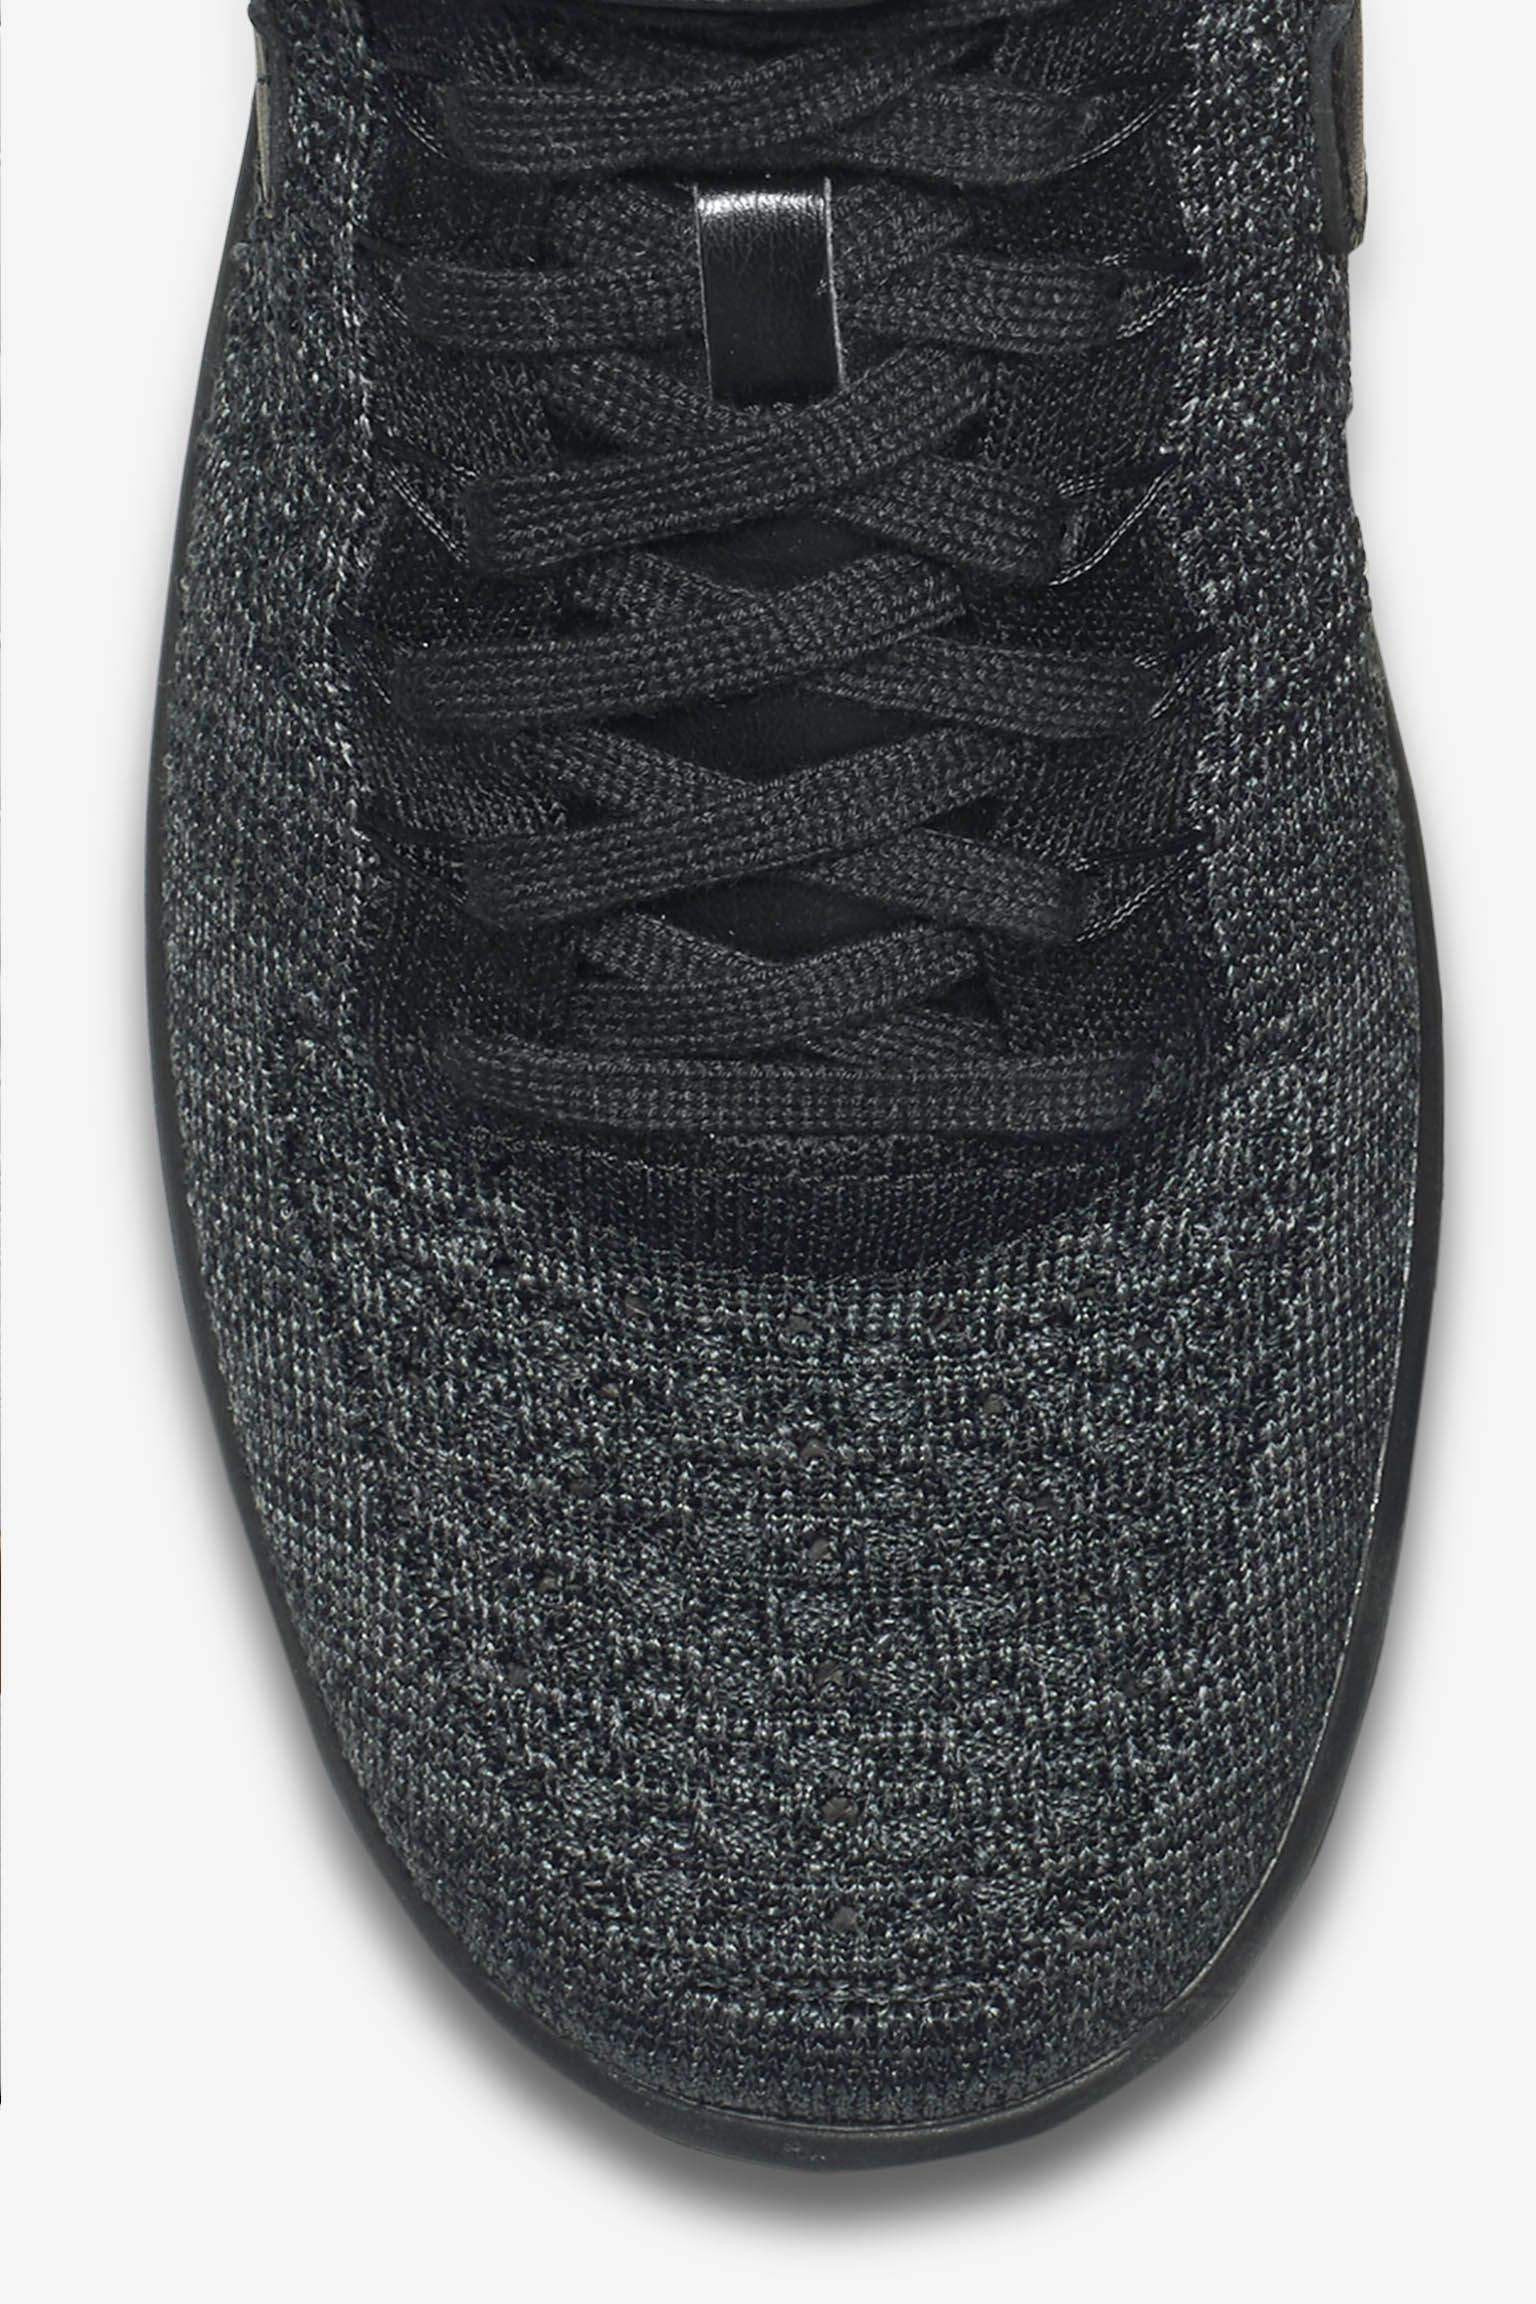 Nike Air Force 1 Ultra Flyknit 'Dark Grey' Release Date